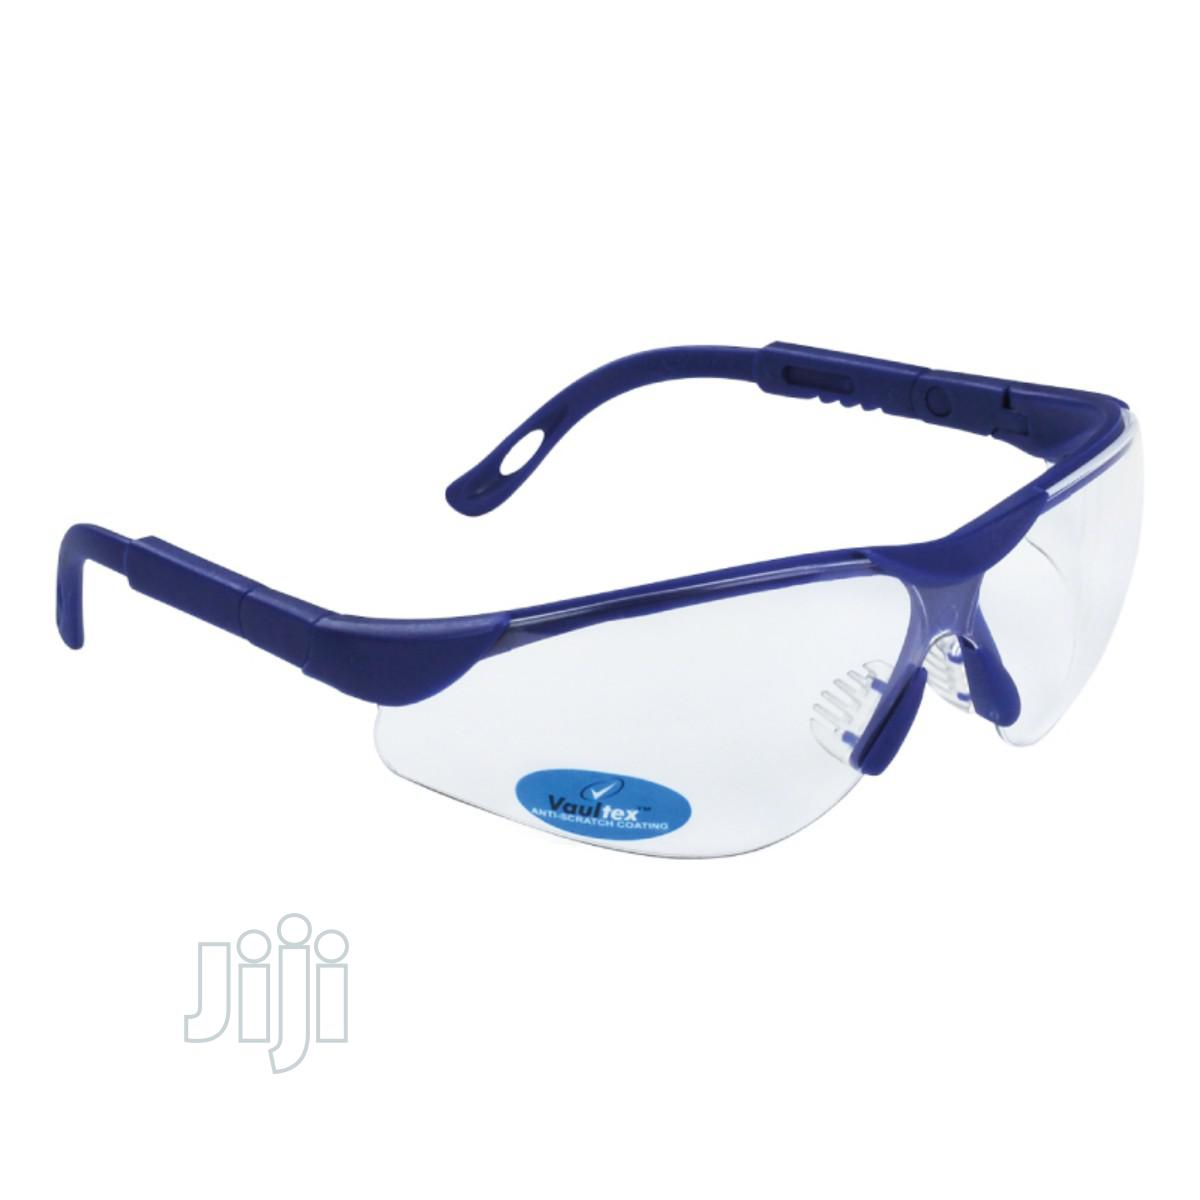 Safety Vaultex Spectacles With Anti-scratch Coating & Anti-fog